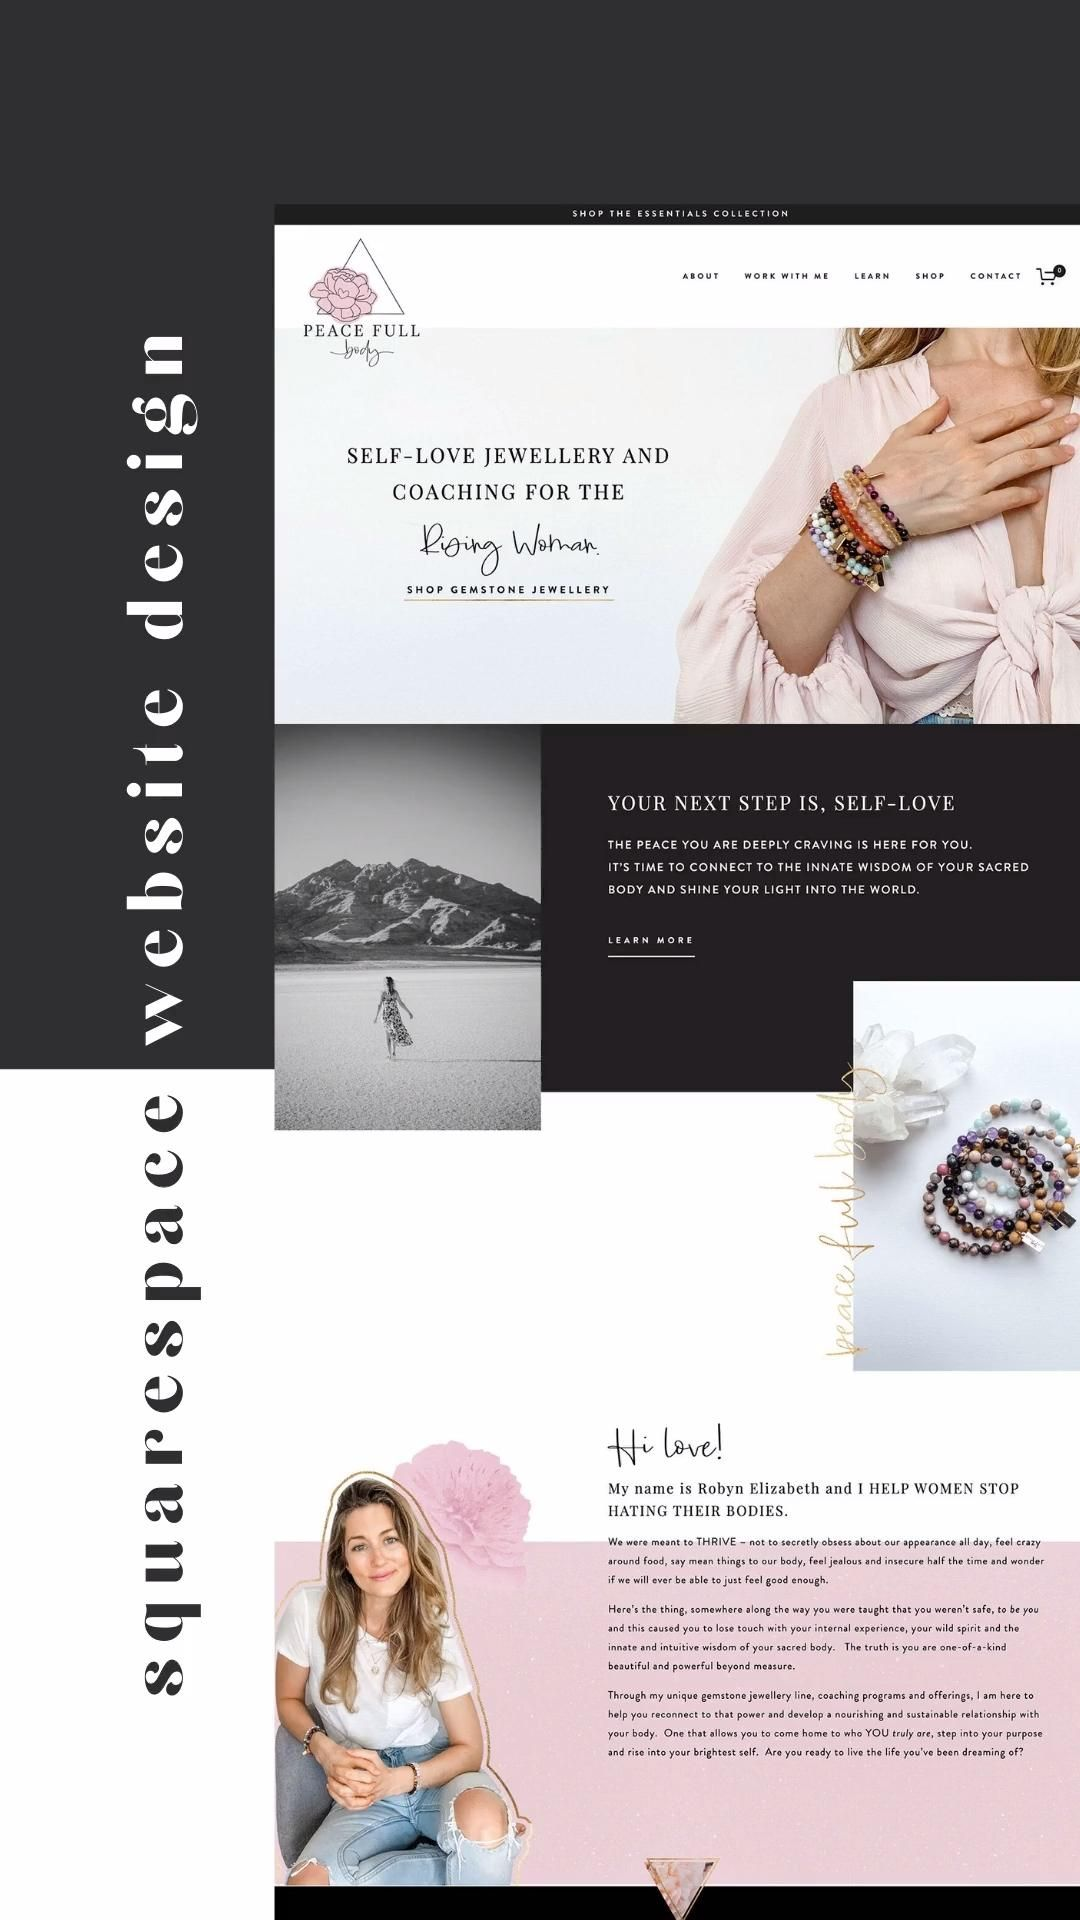 Fresh and Fun All-Inclusive Brand and Web Design for a Self-Love Jewellery